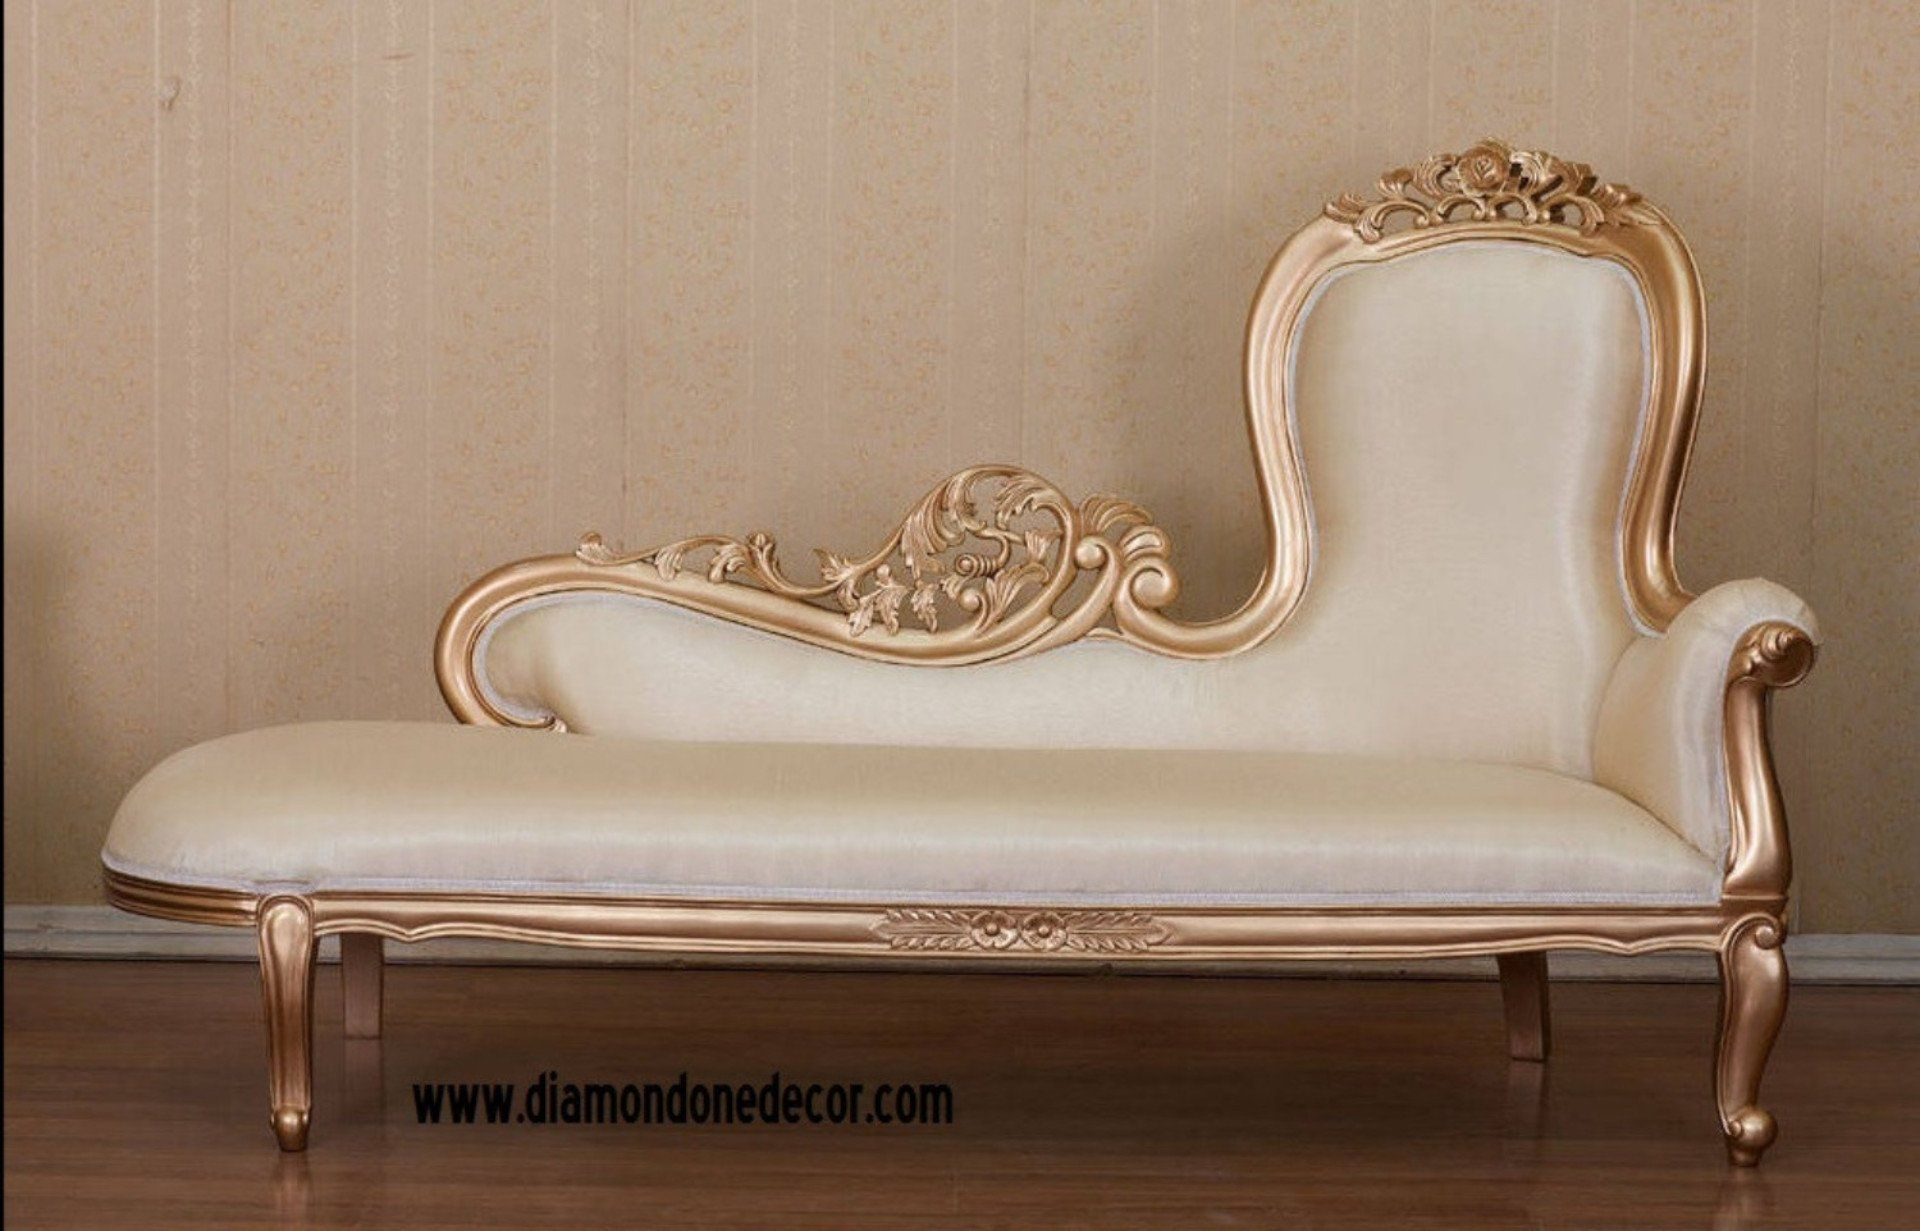 Chaise Style Louis 16 Baroque French Reproduction Louis Xvi Style Fainting Couch Or